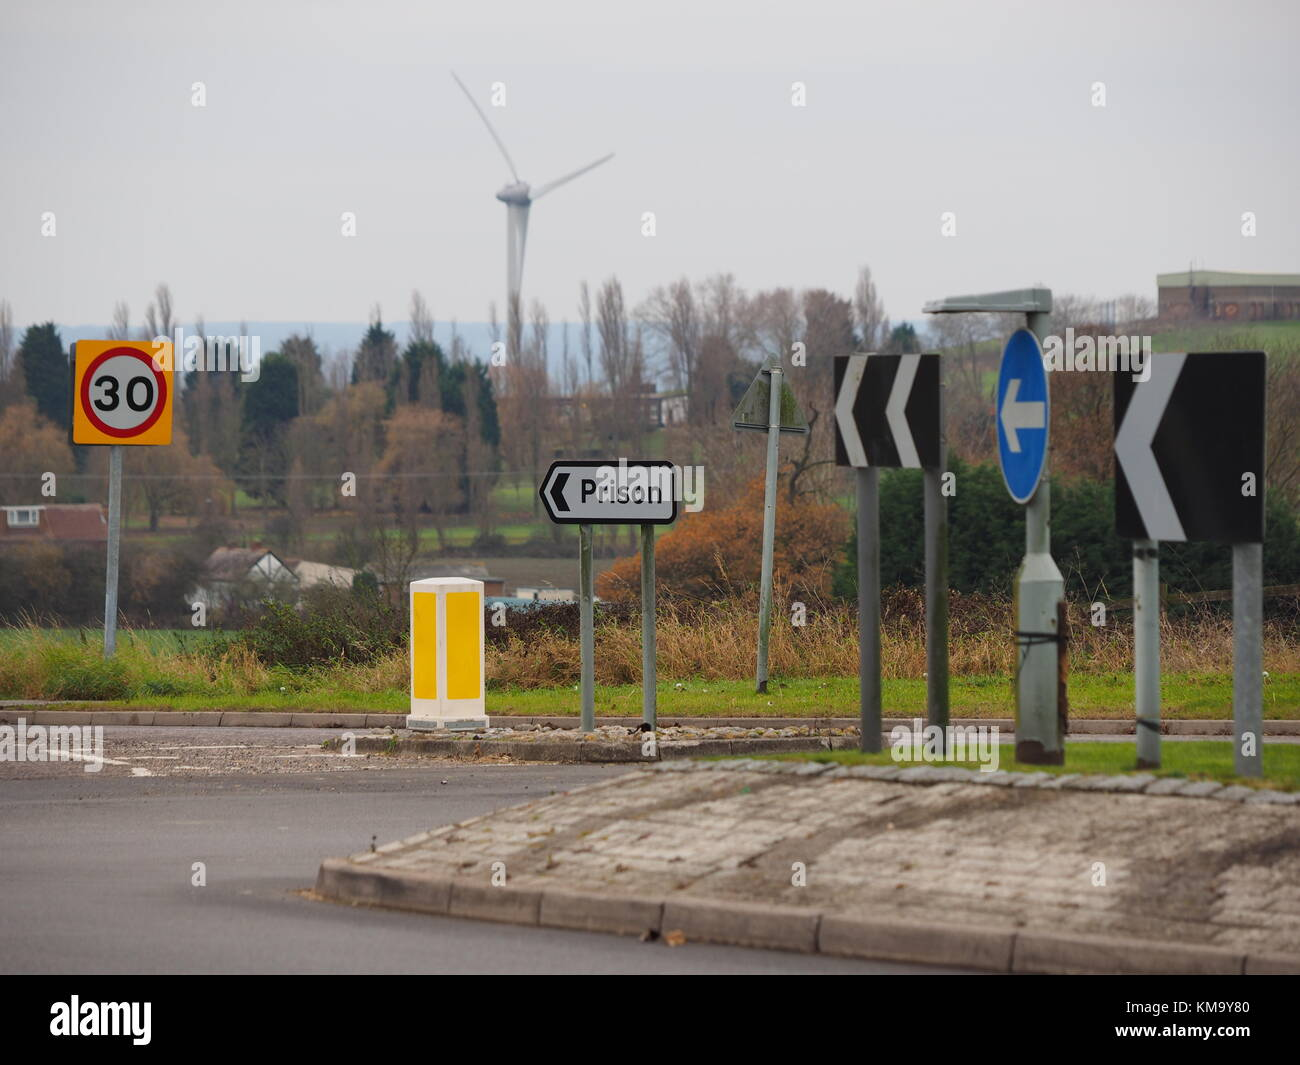 Prison road sign for the Sheppey cluster of prisons (Swaleside, Elmley and Stanford Hill). - Stock Image